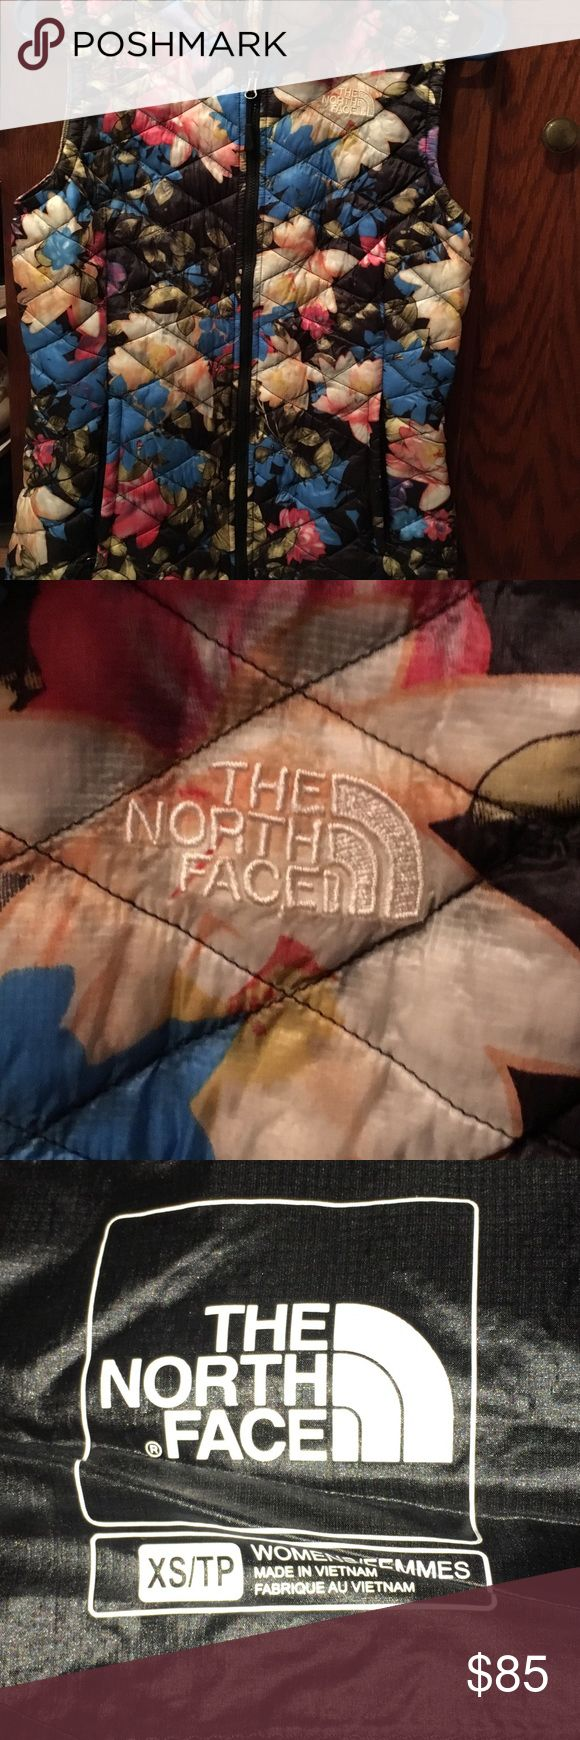 The north face floral vest The north face floral quilted zip up vest   Super cute wore a handful of times. Excellent condition The North Face Jackets & Coats Vests